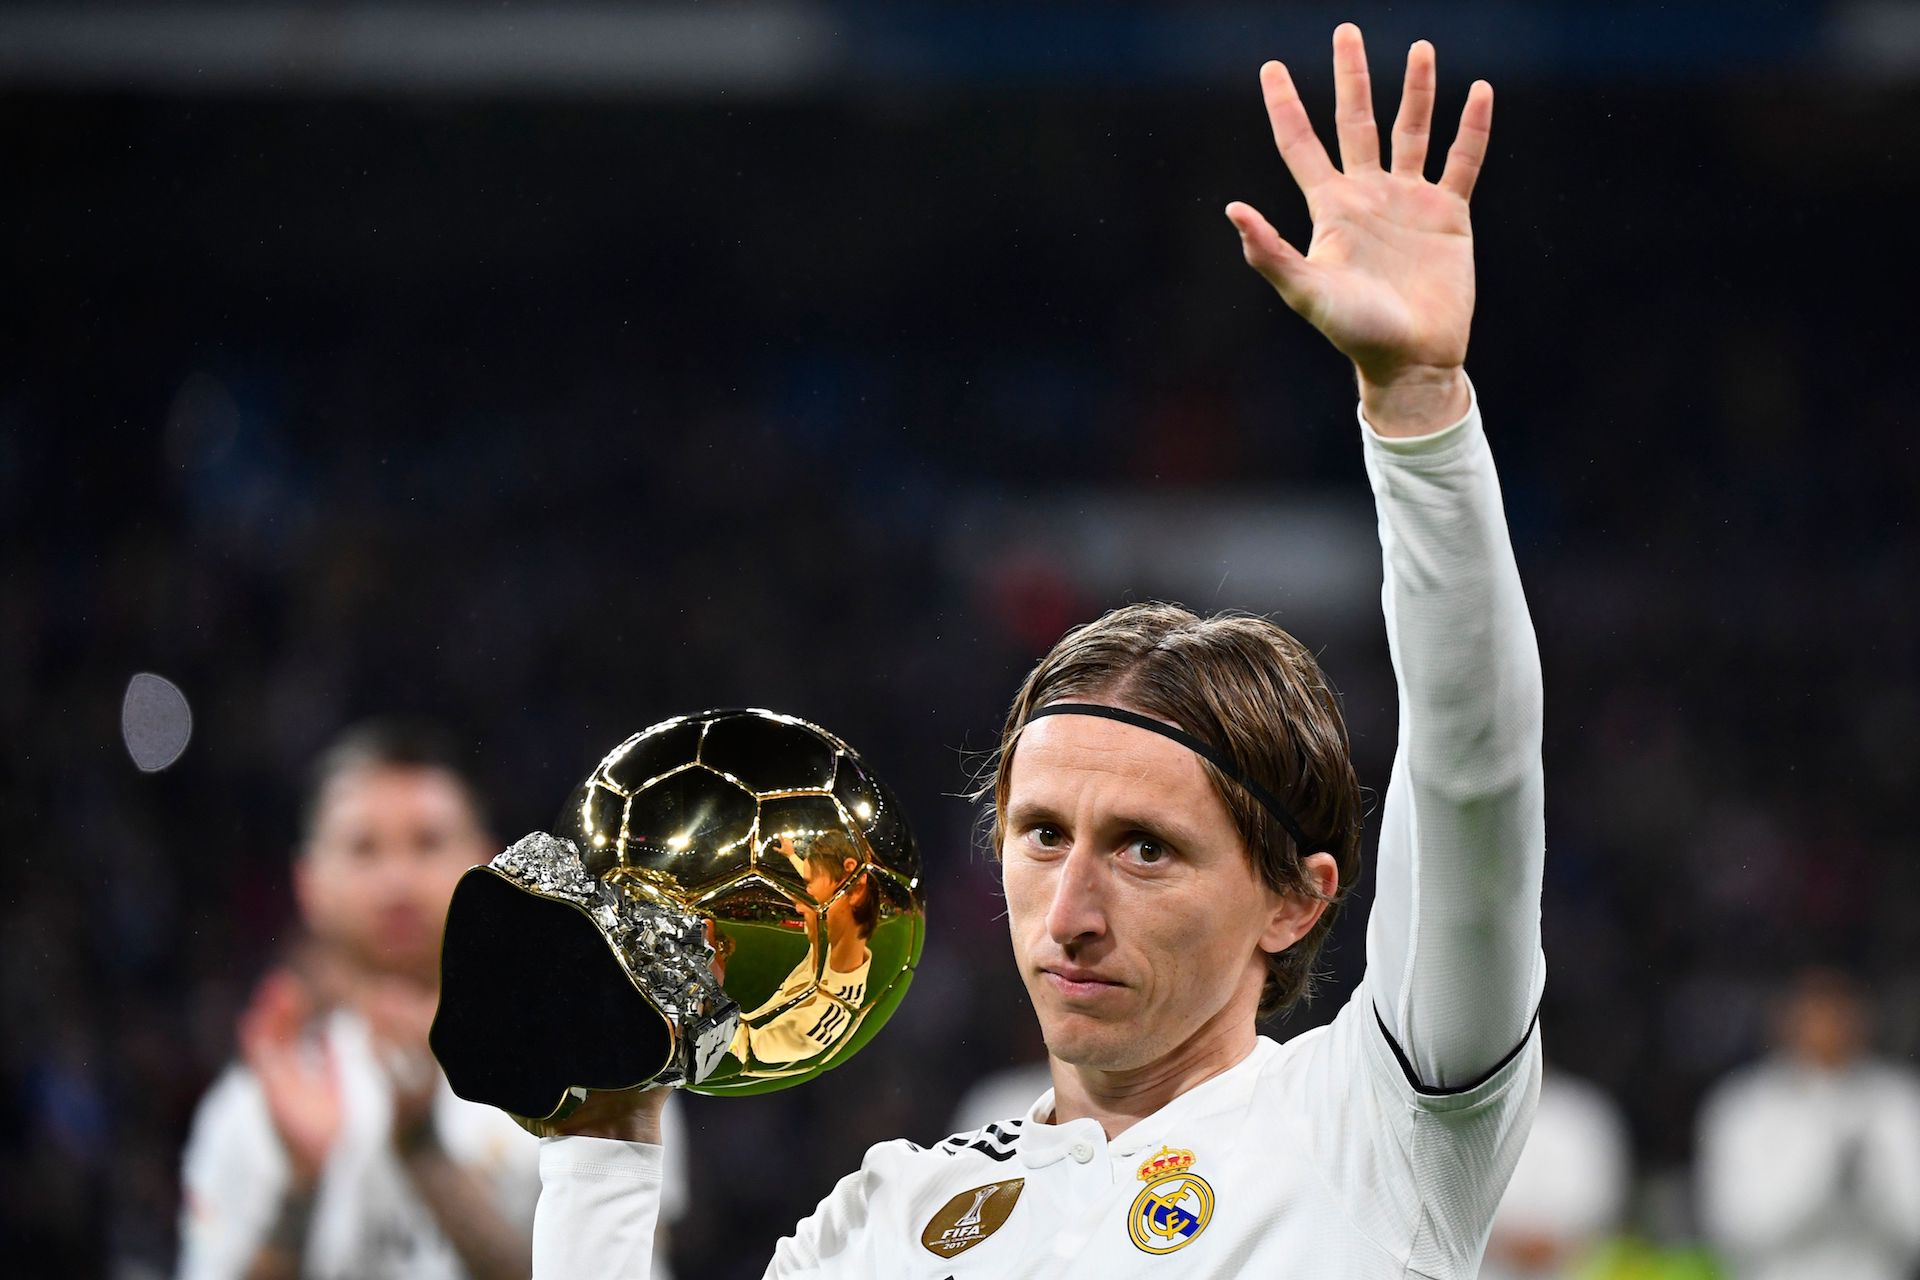 Real Madrid : Ballon d'Or, Modric tacle violemment Messi et Ronaldo